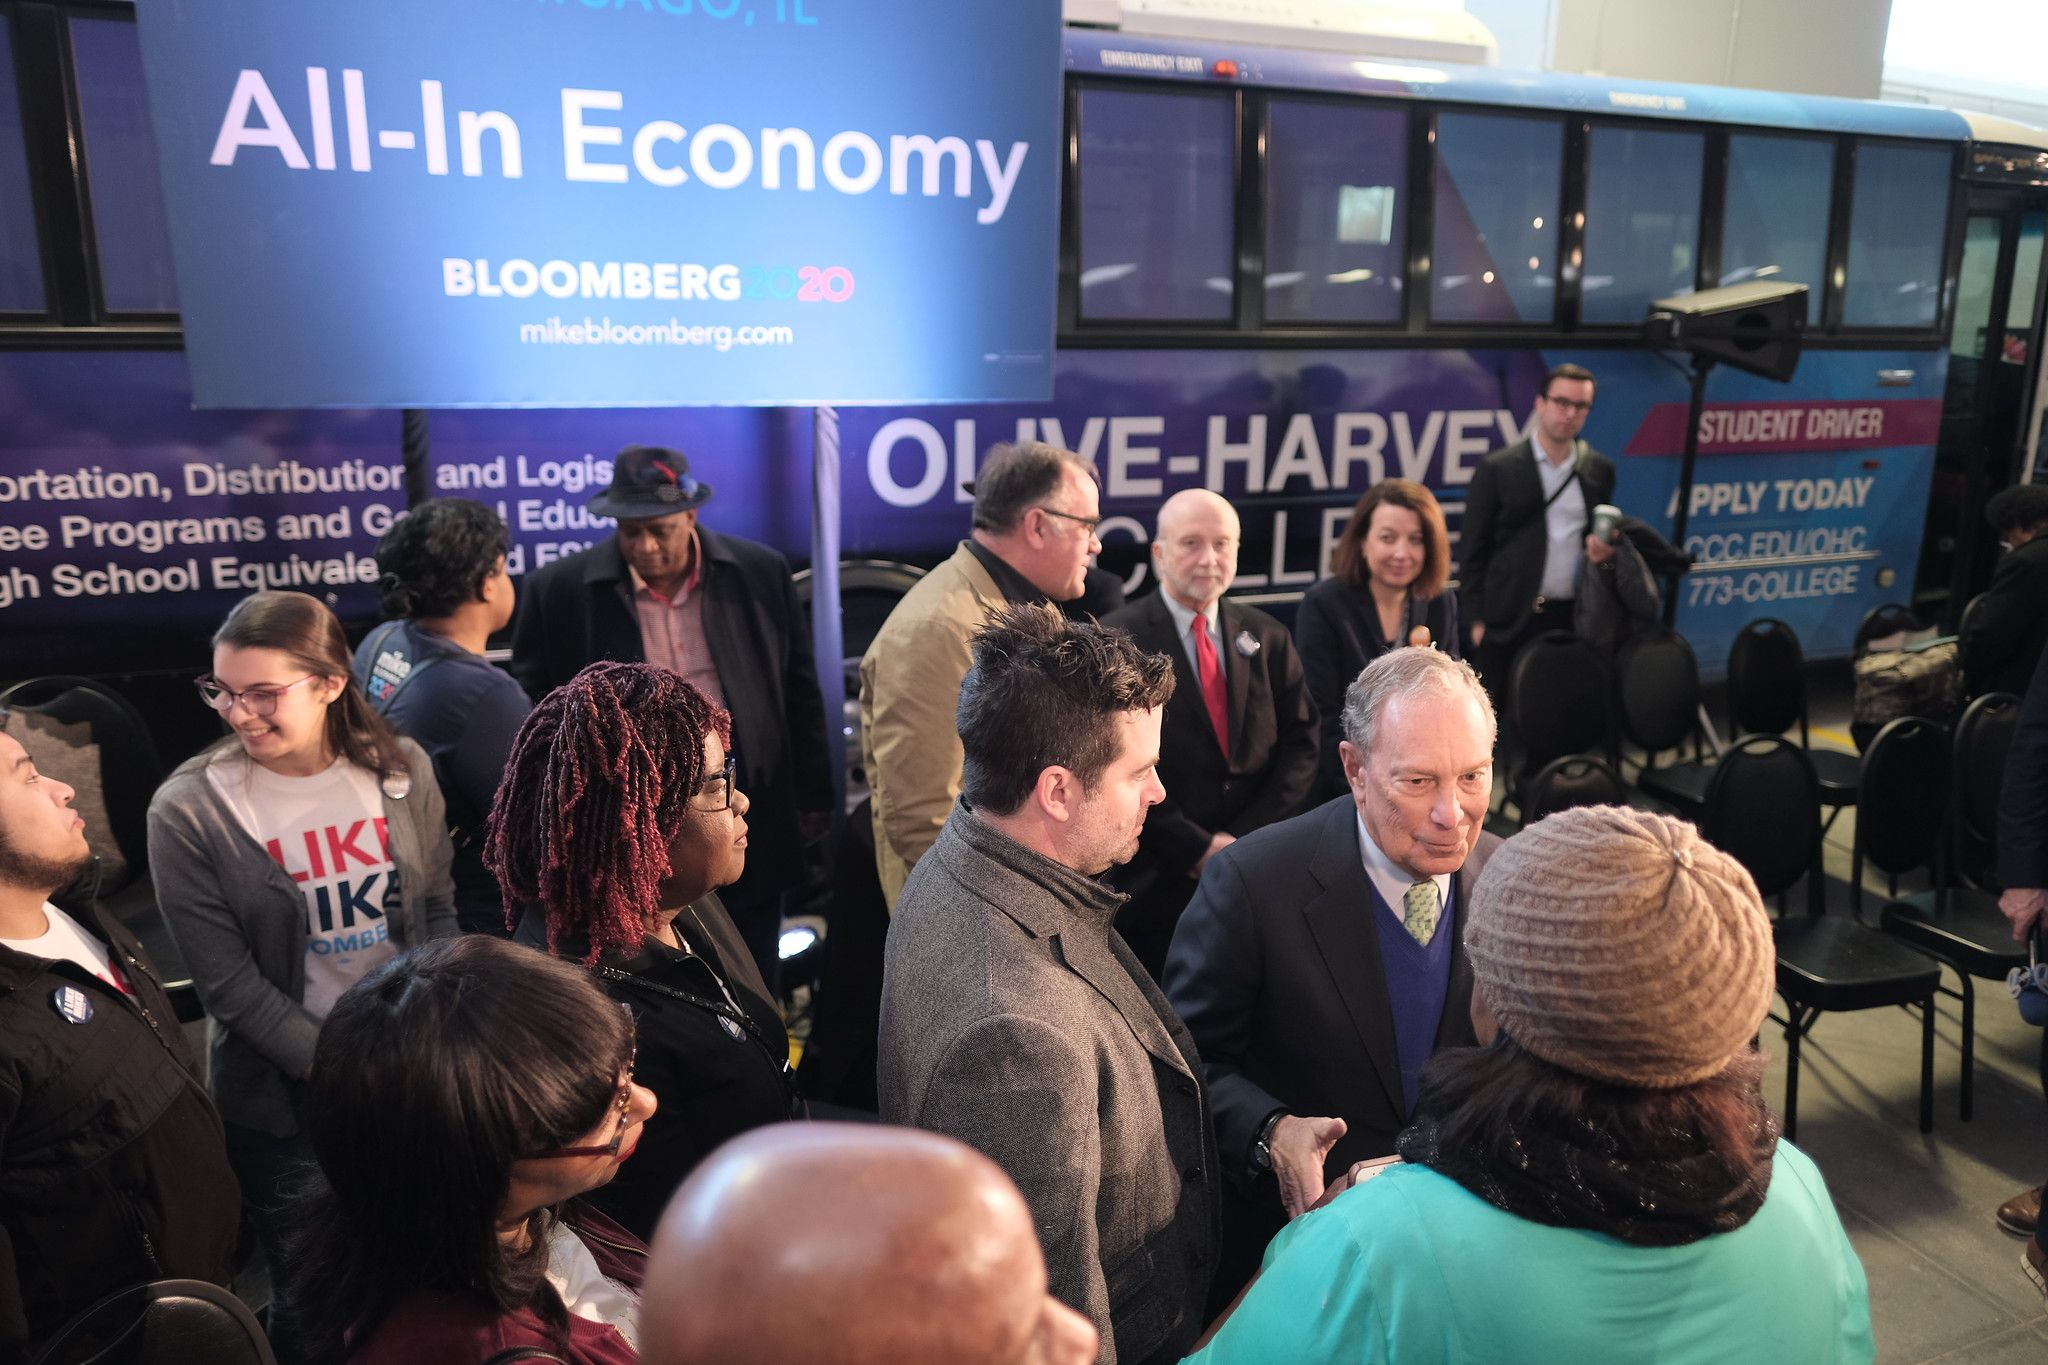 Mike unveils his All-In Economy initiative in Chicago, Illinois on January 8, 2020.